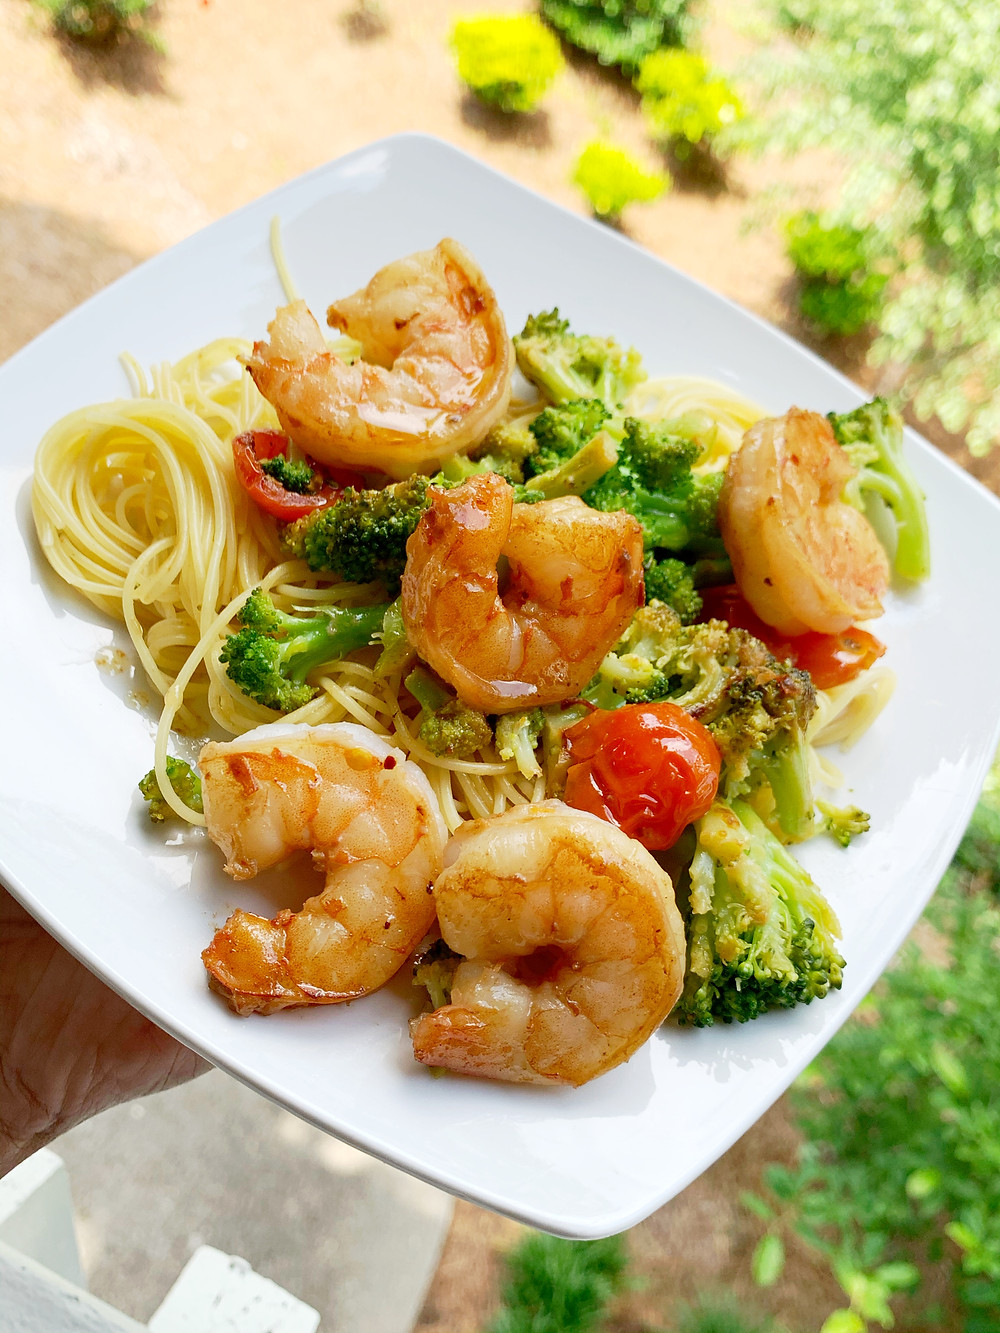 garlic shrimp scampi with angel hair pasta, broccoli, cherry tomatoes, and garlic butter sauce